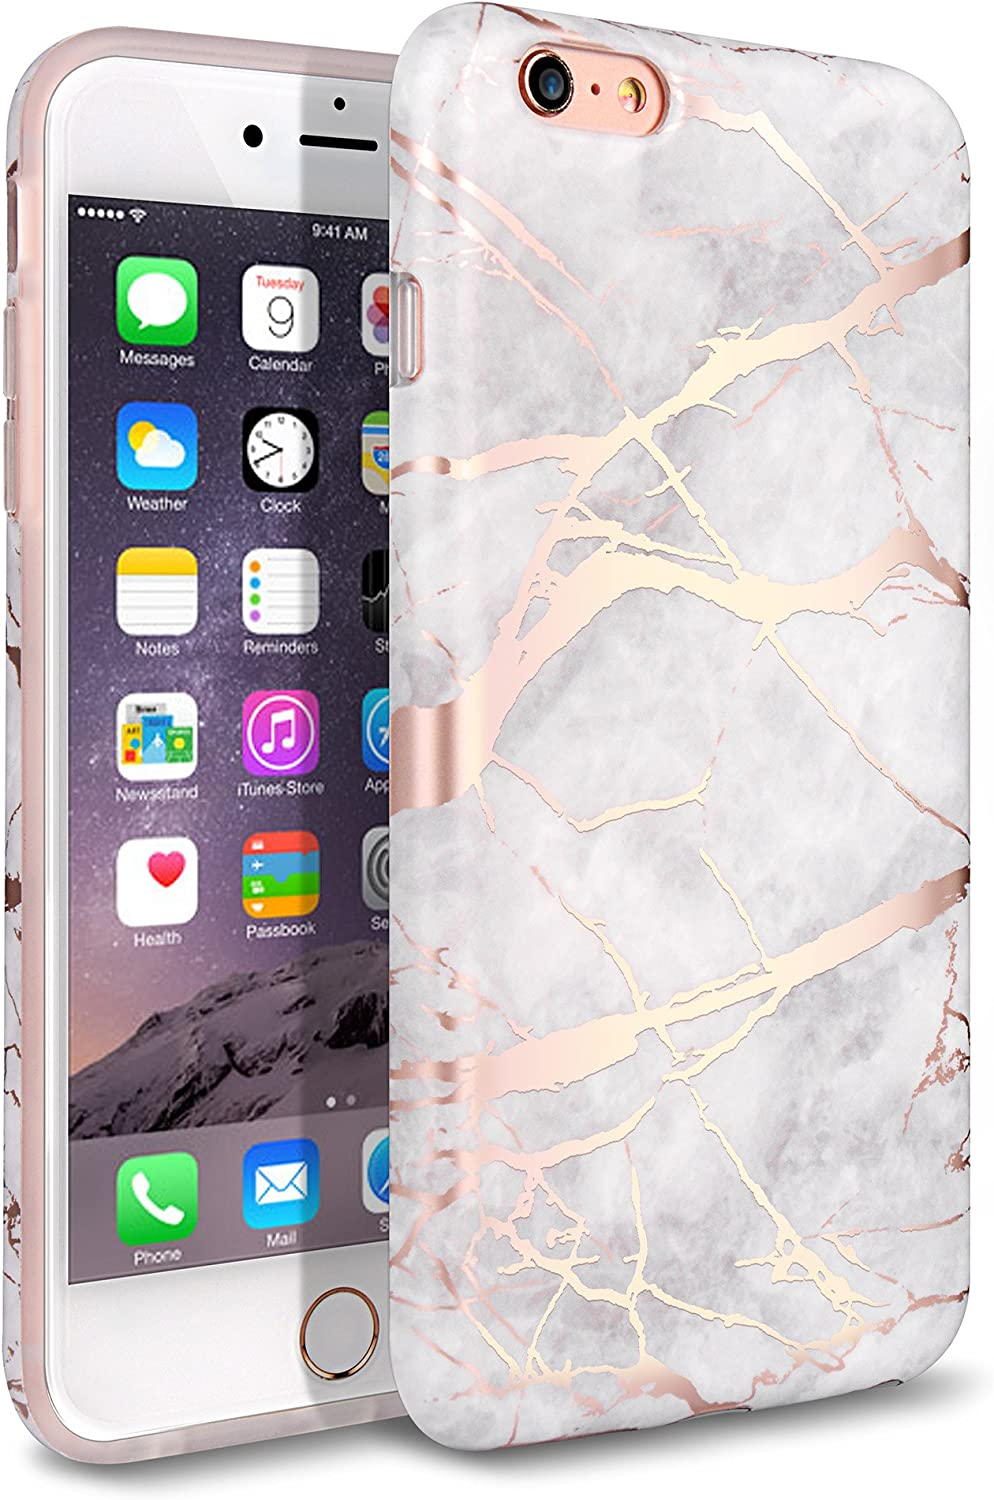 iPhone 6 Plus Case, iPhone 6S Plus Case, Shiny Rose Gold White Marble Design,WORLDMOM Clear Marble Pattern Slim TPU Soft Rubber Hybrid Shockproof Protective Case for iPhone 6 Plus / 6S Plus (Marble)